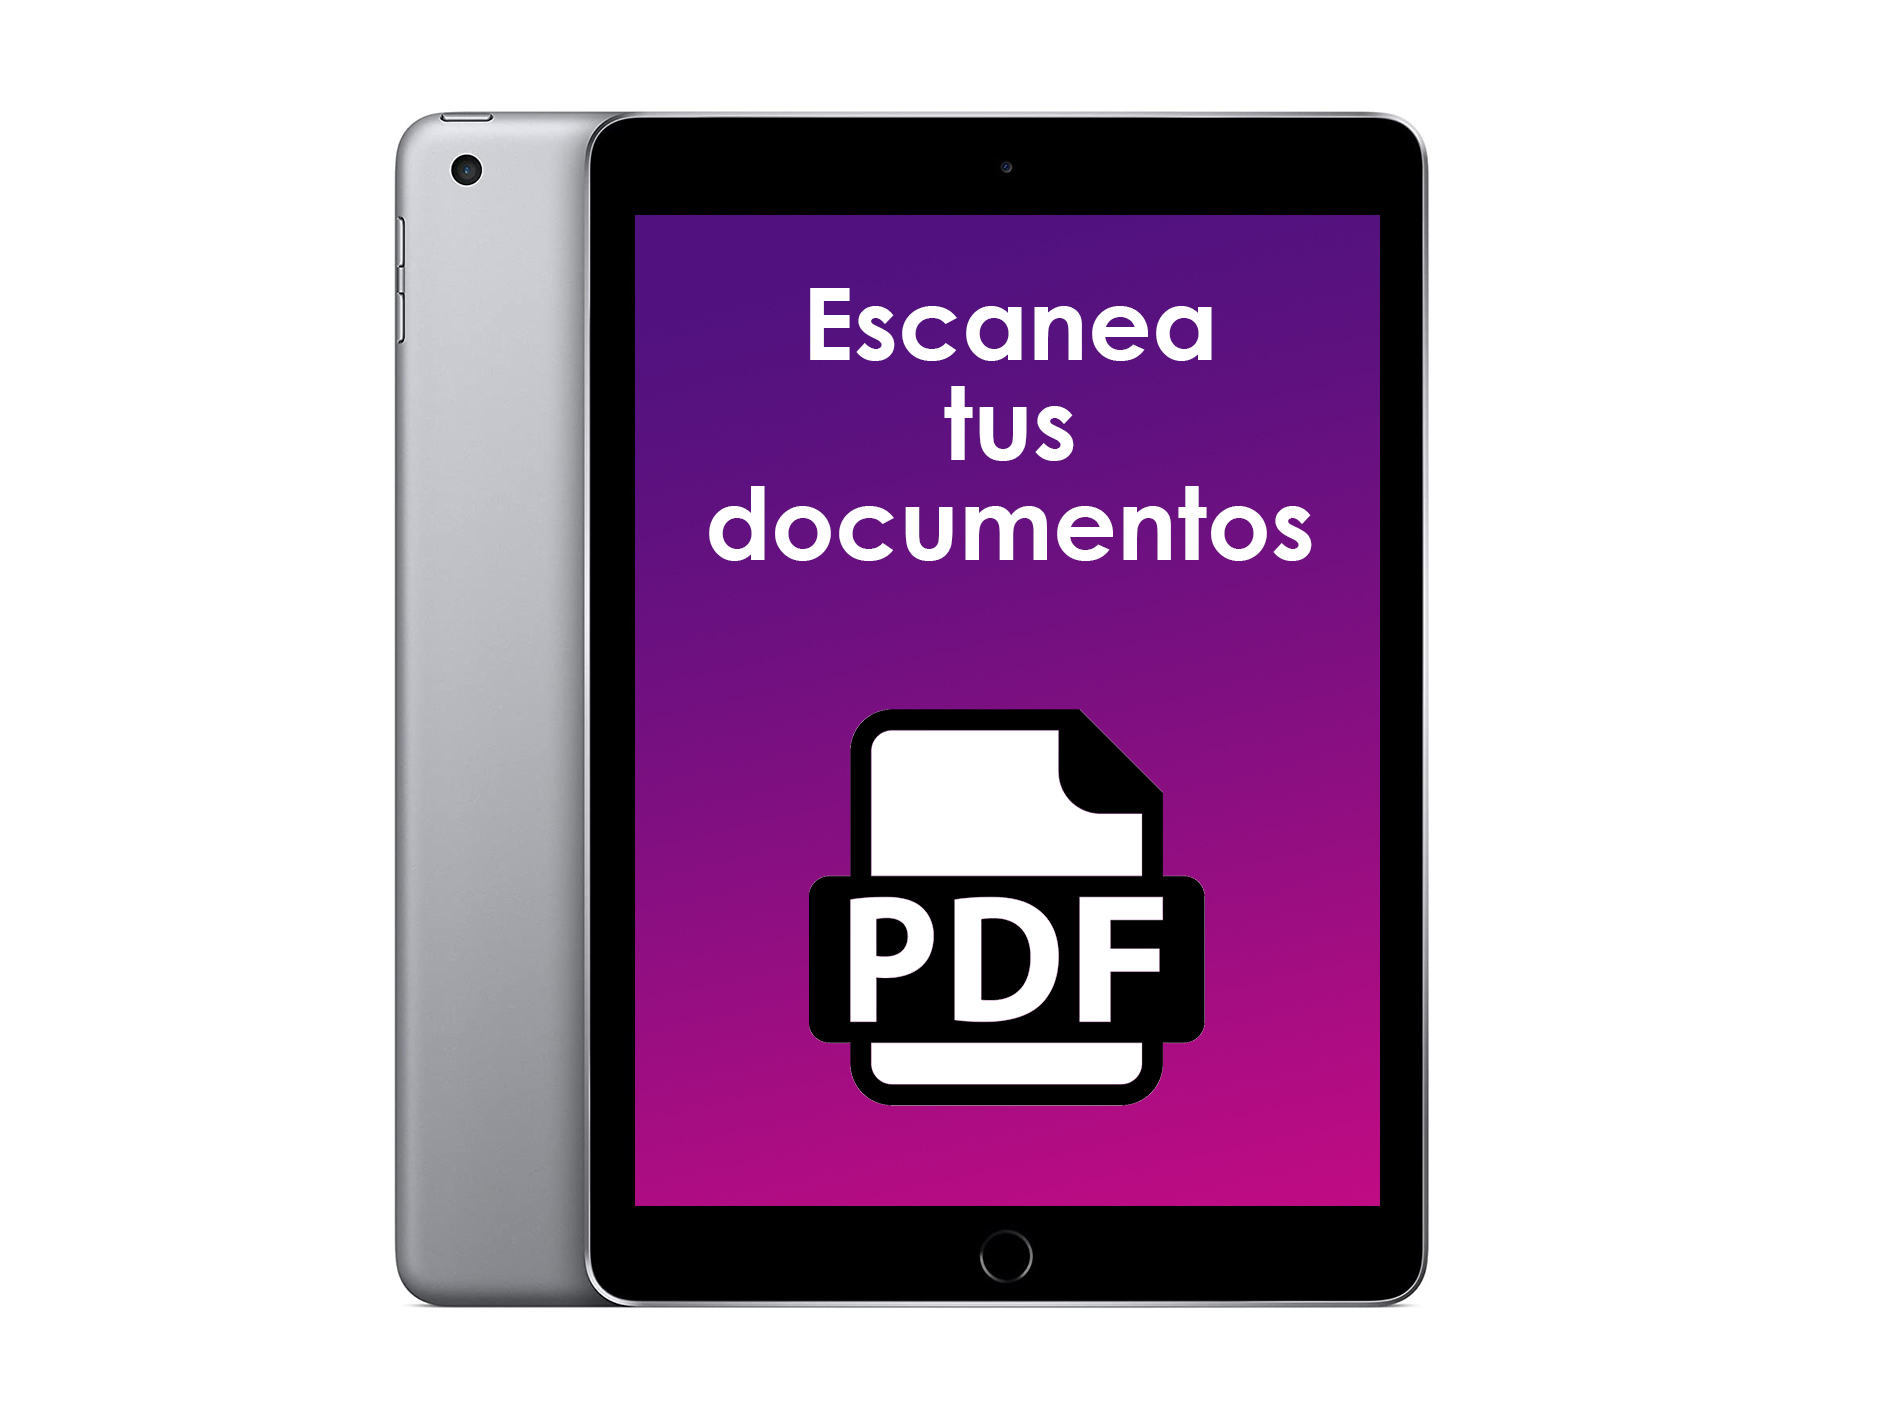 Escanear documentos con tu iPad